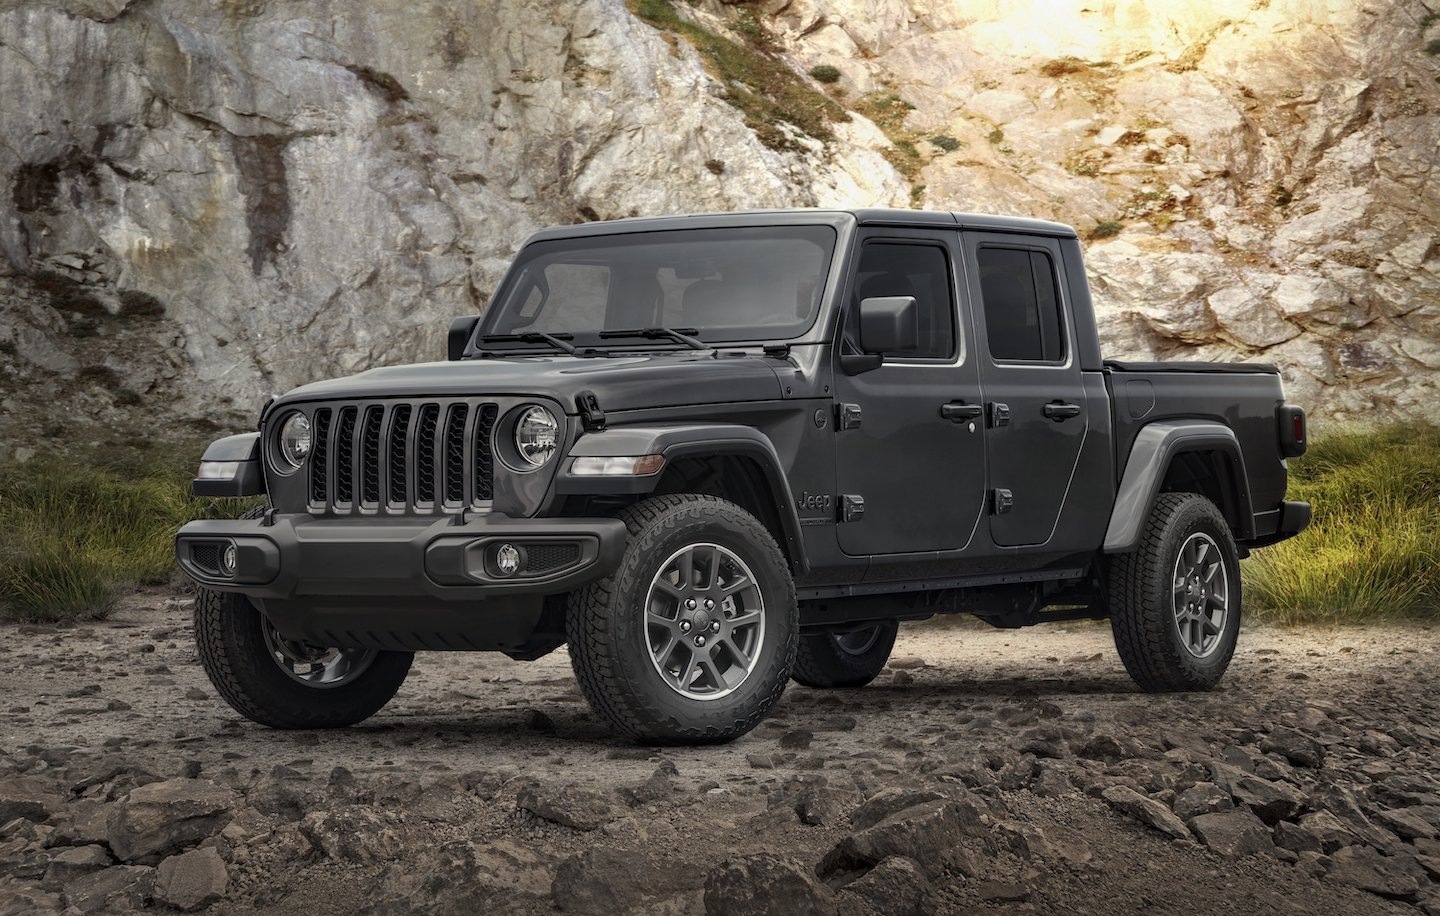 2021 Jeep Gladiator 80th Anniversary Edition.jpg